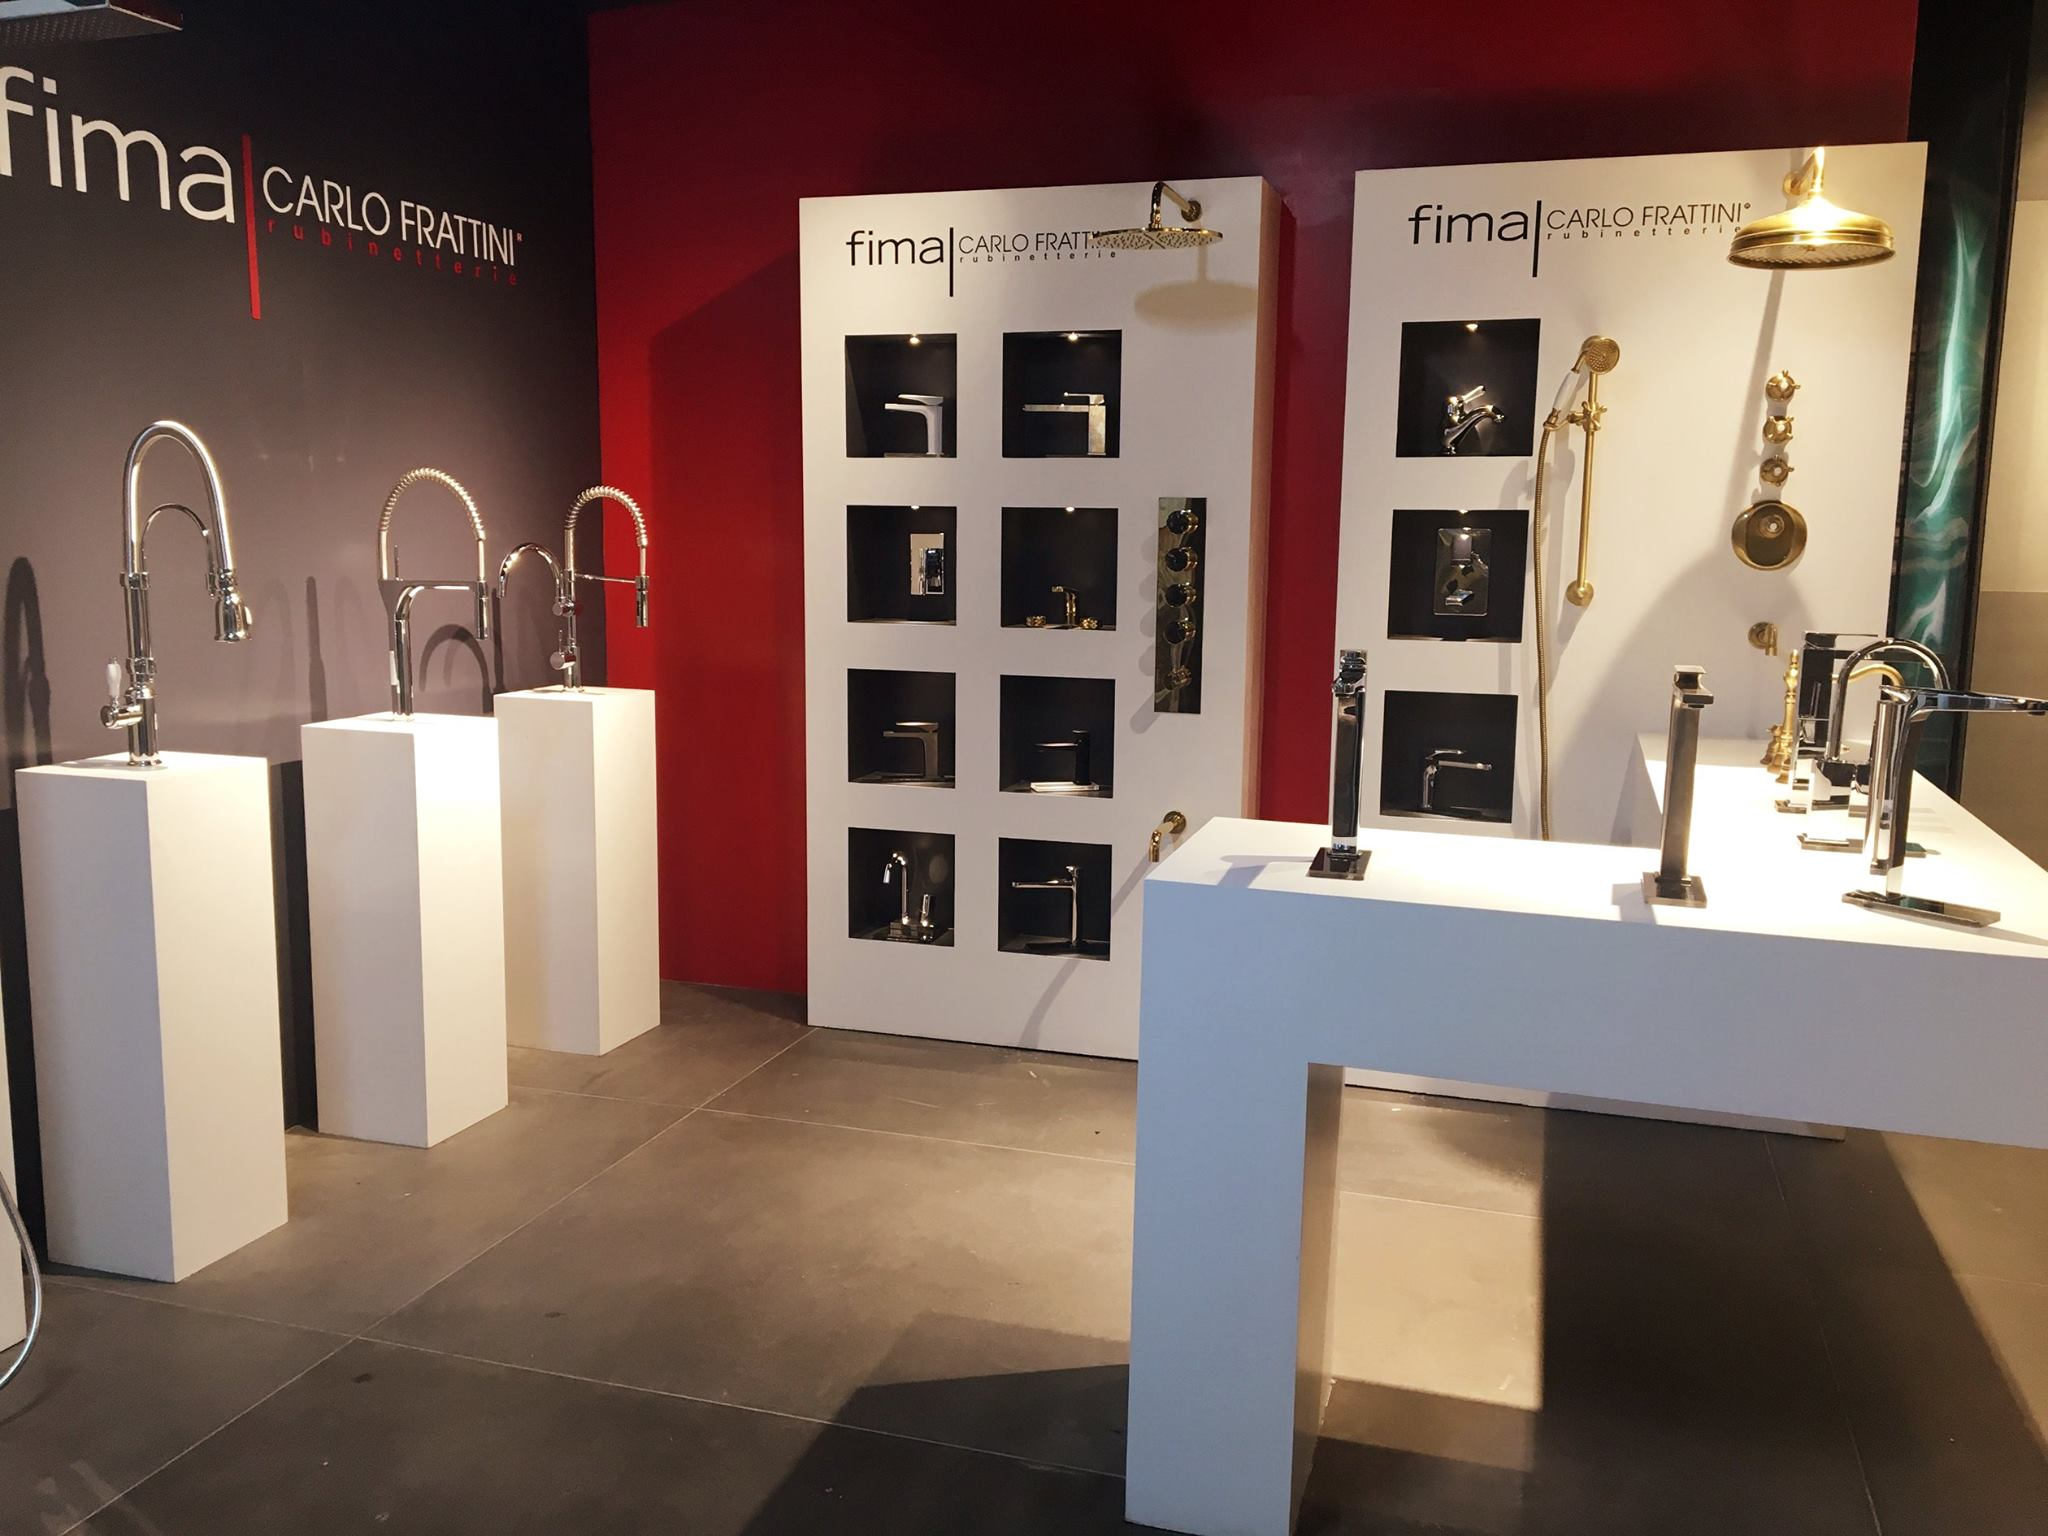 ... Carlo Frattini, The Leading Collection For The Contract Sector, Fima  Aqua Code, The Line Of Products For The Bath And Shower Environment, ...